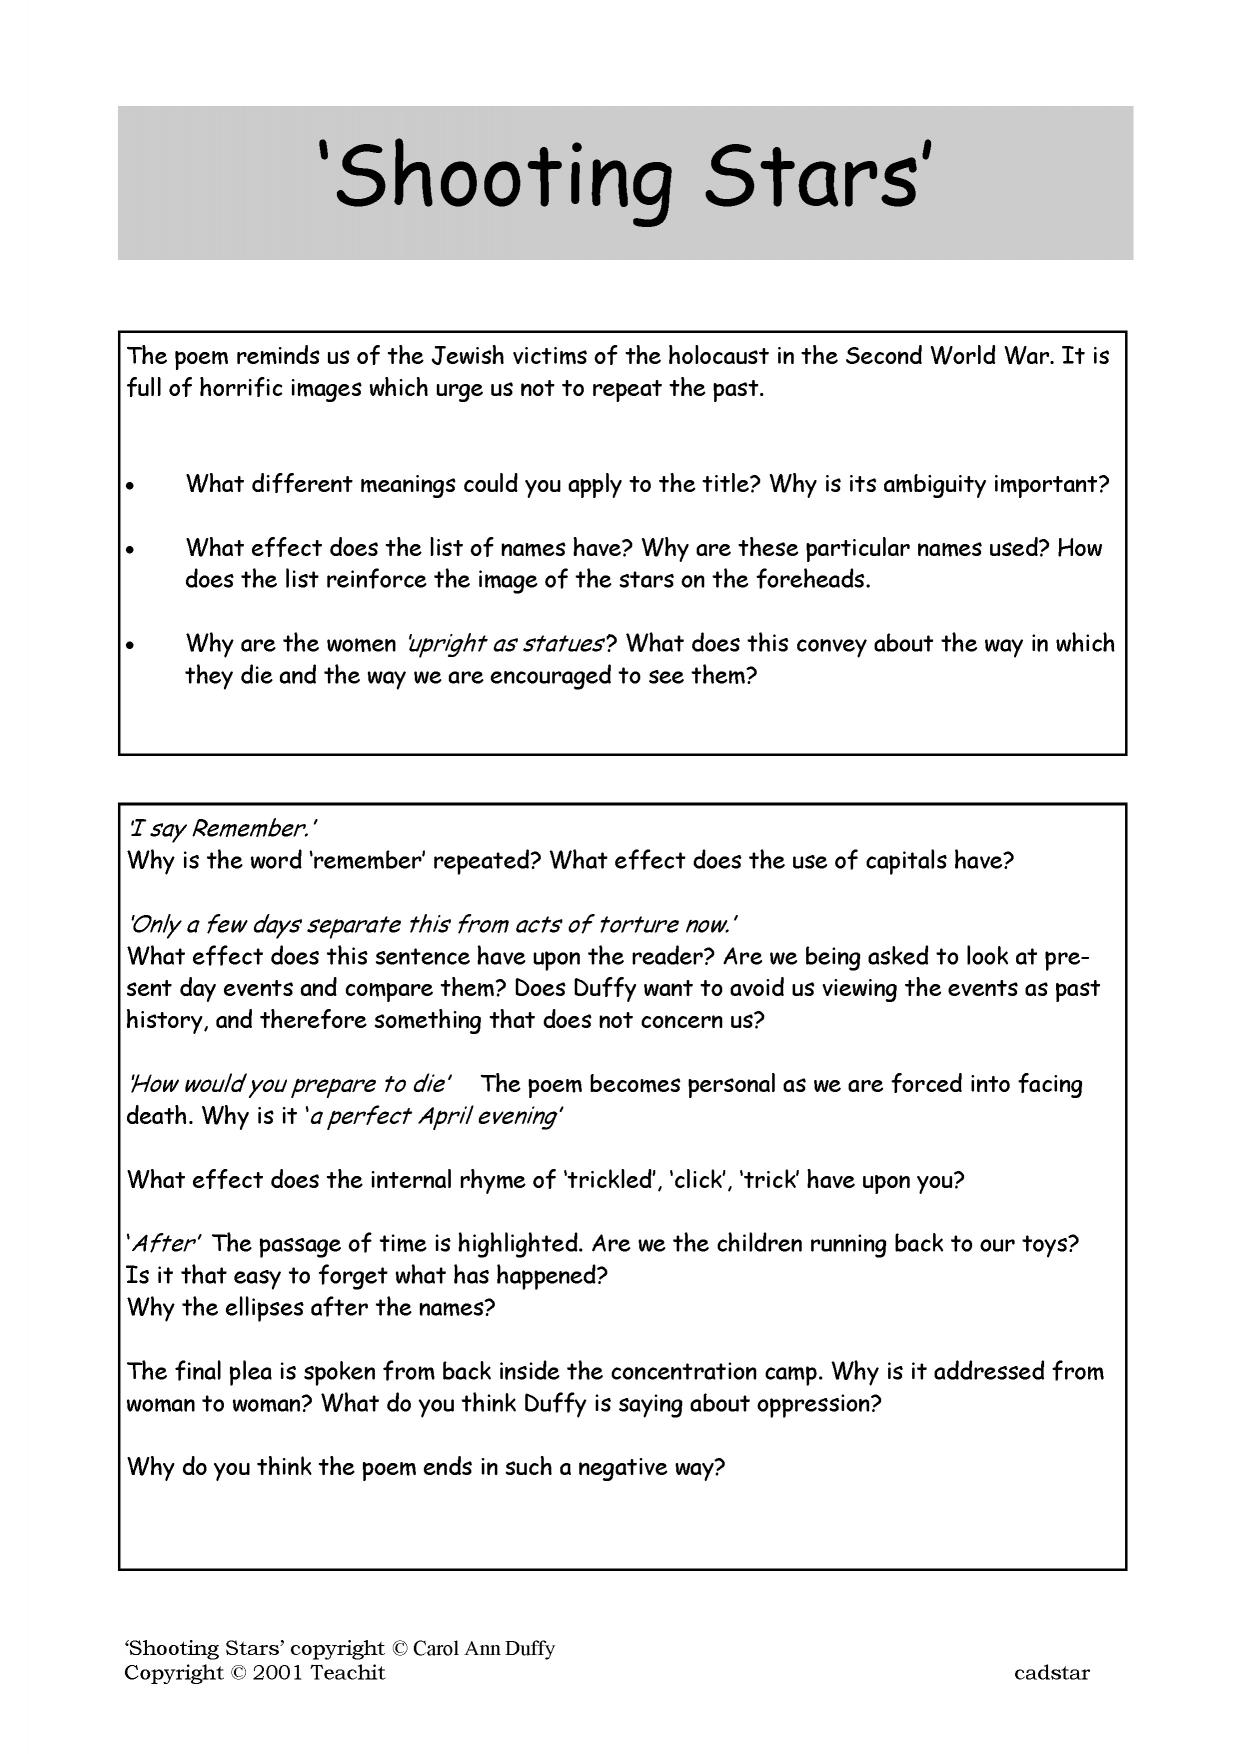 shooting stars essay carol ann duffy Model essays shooting stars student essay (2) carol ann duffy's poem 'shooting stars' is a poem in which human suffering is effectively portrayed.